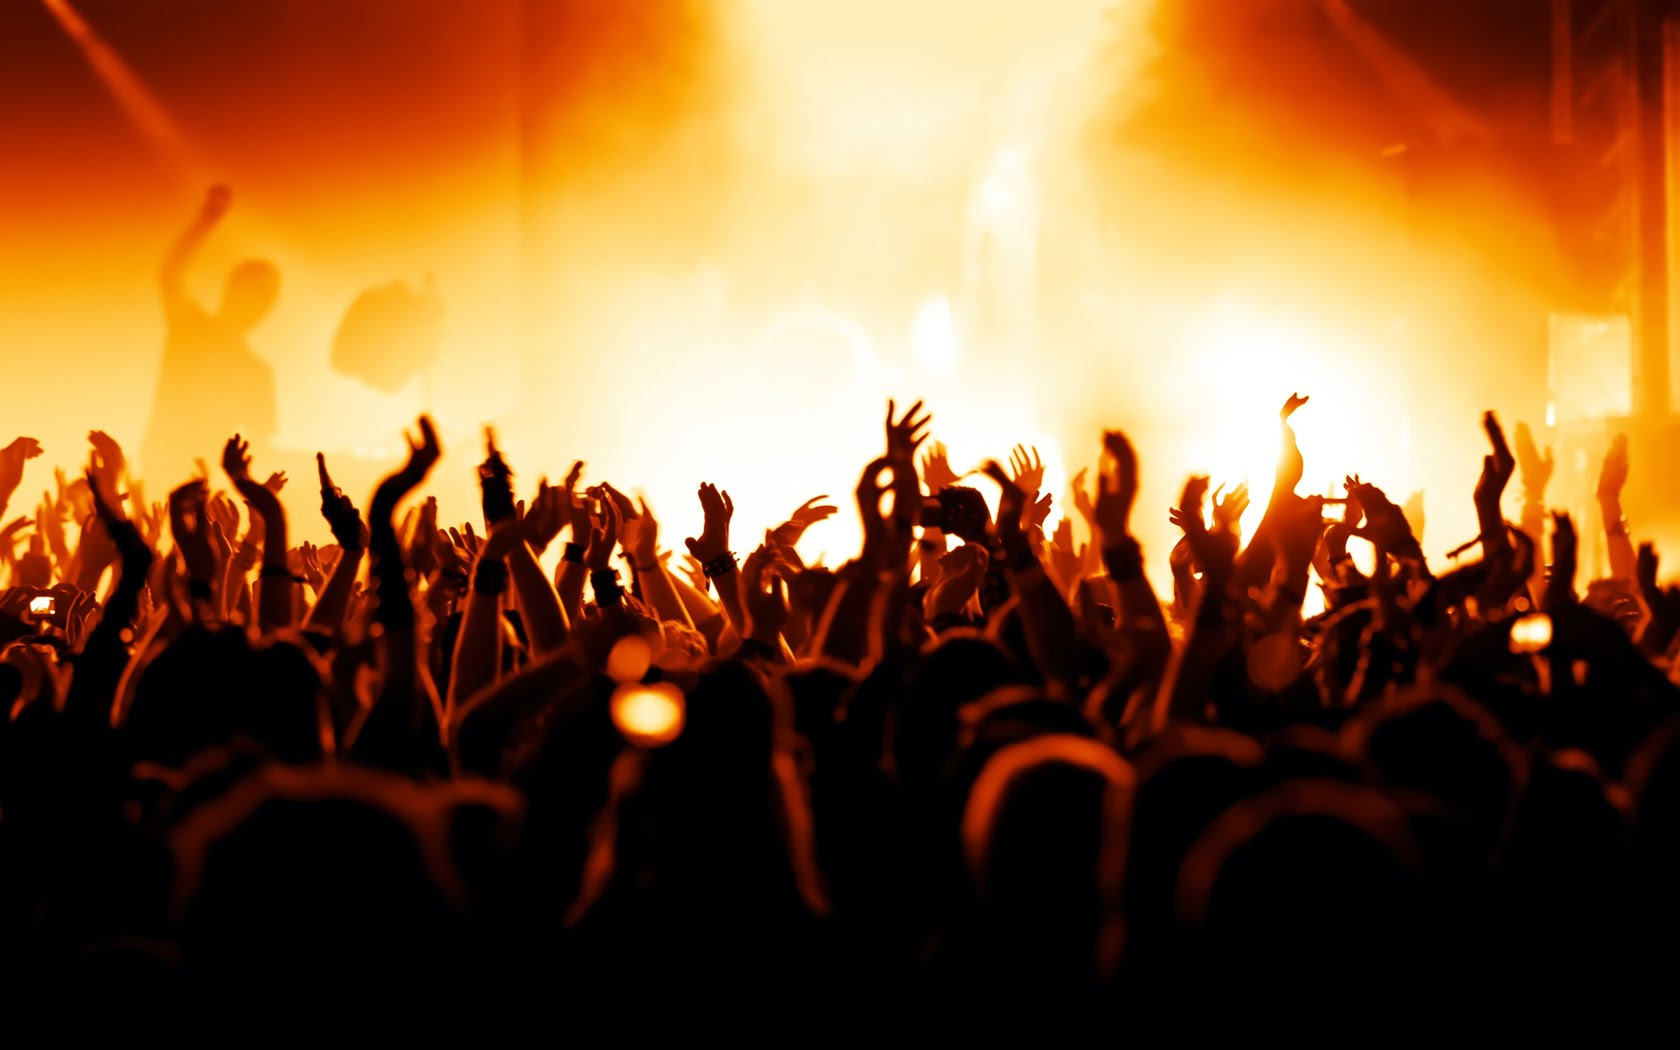 MARKETING IS THE KEY TO TAKING YOUR BAND TO THE TOP!   Sadly, talent isn't enough to make your music heard. And neither is relying on who you know. If you don't have the right marketing materials, you'll be passed over for the next big thing.